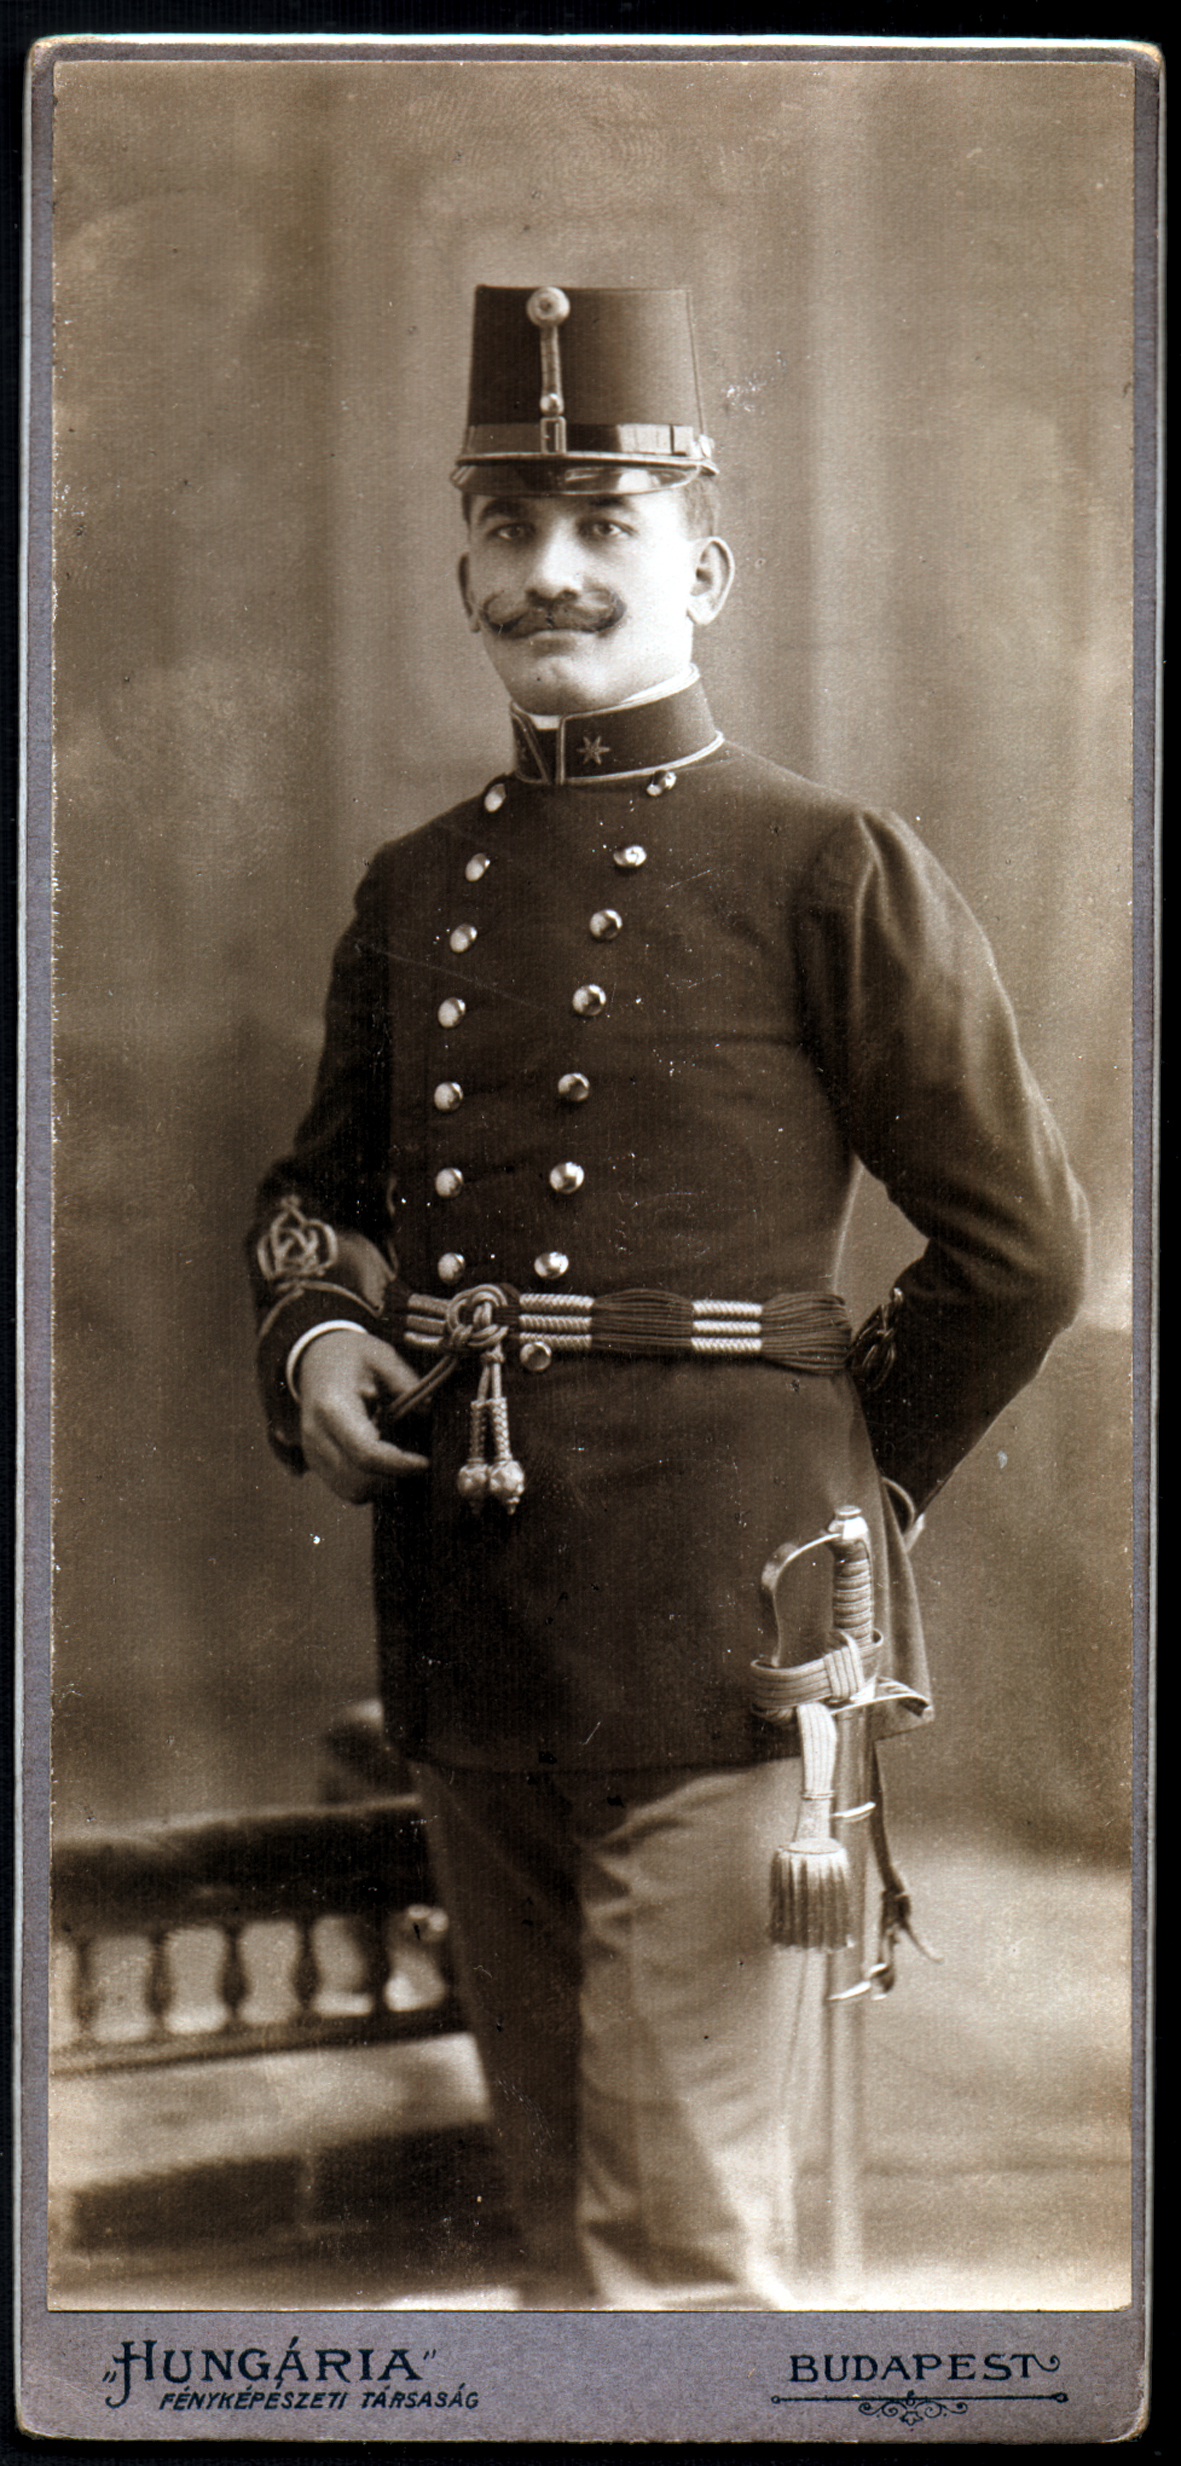 Kati Andai's father Lajos Erdos as a soldier during WWI